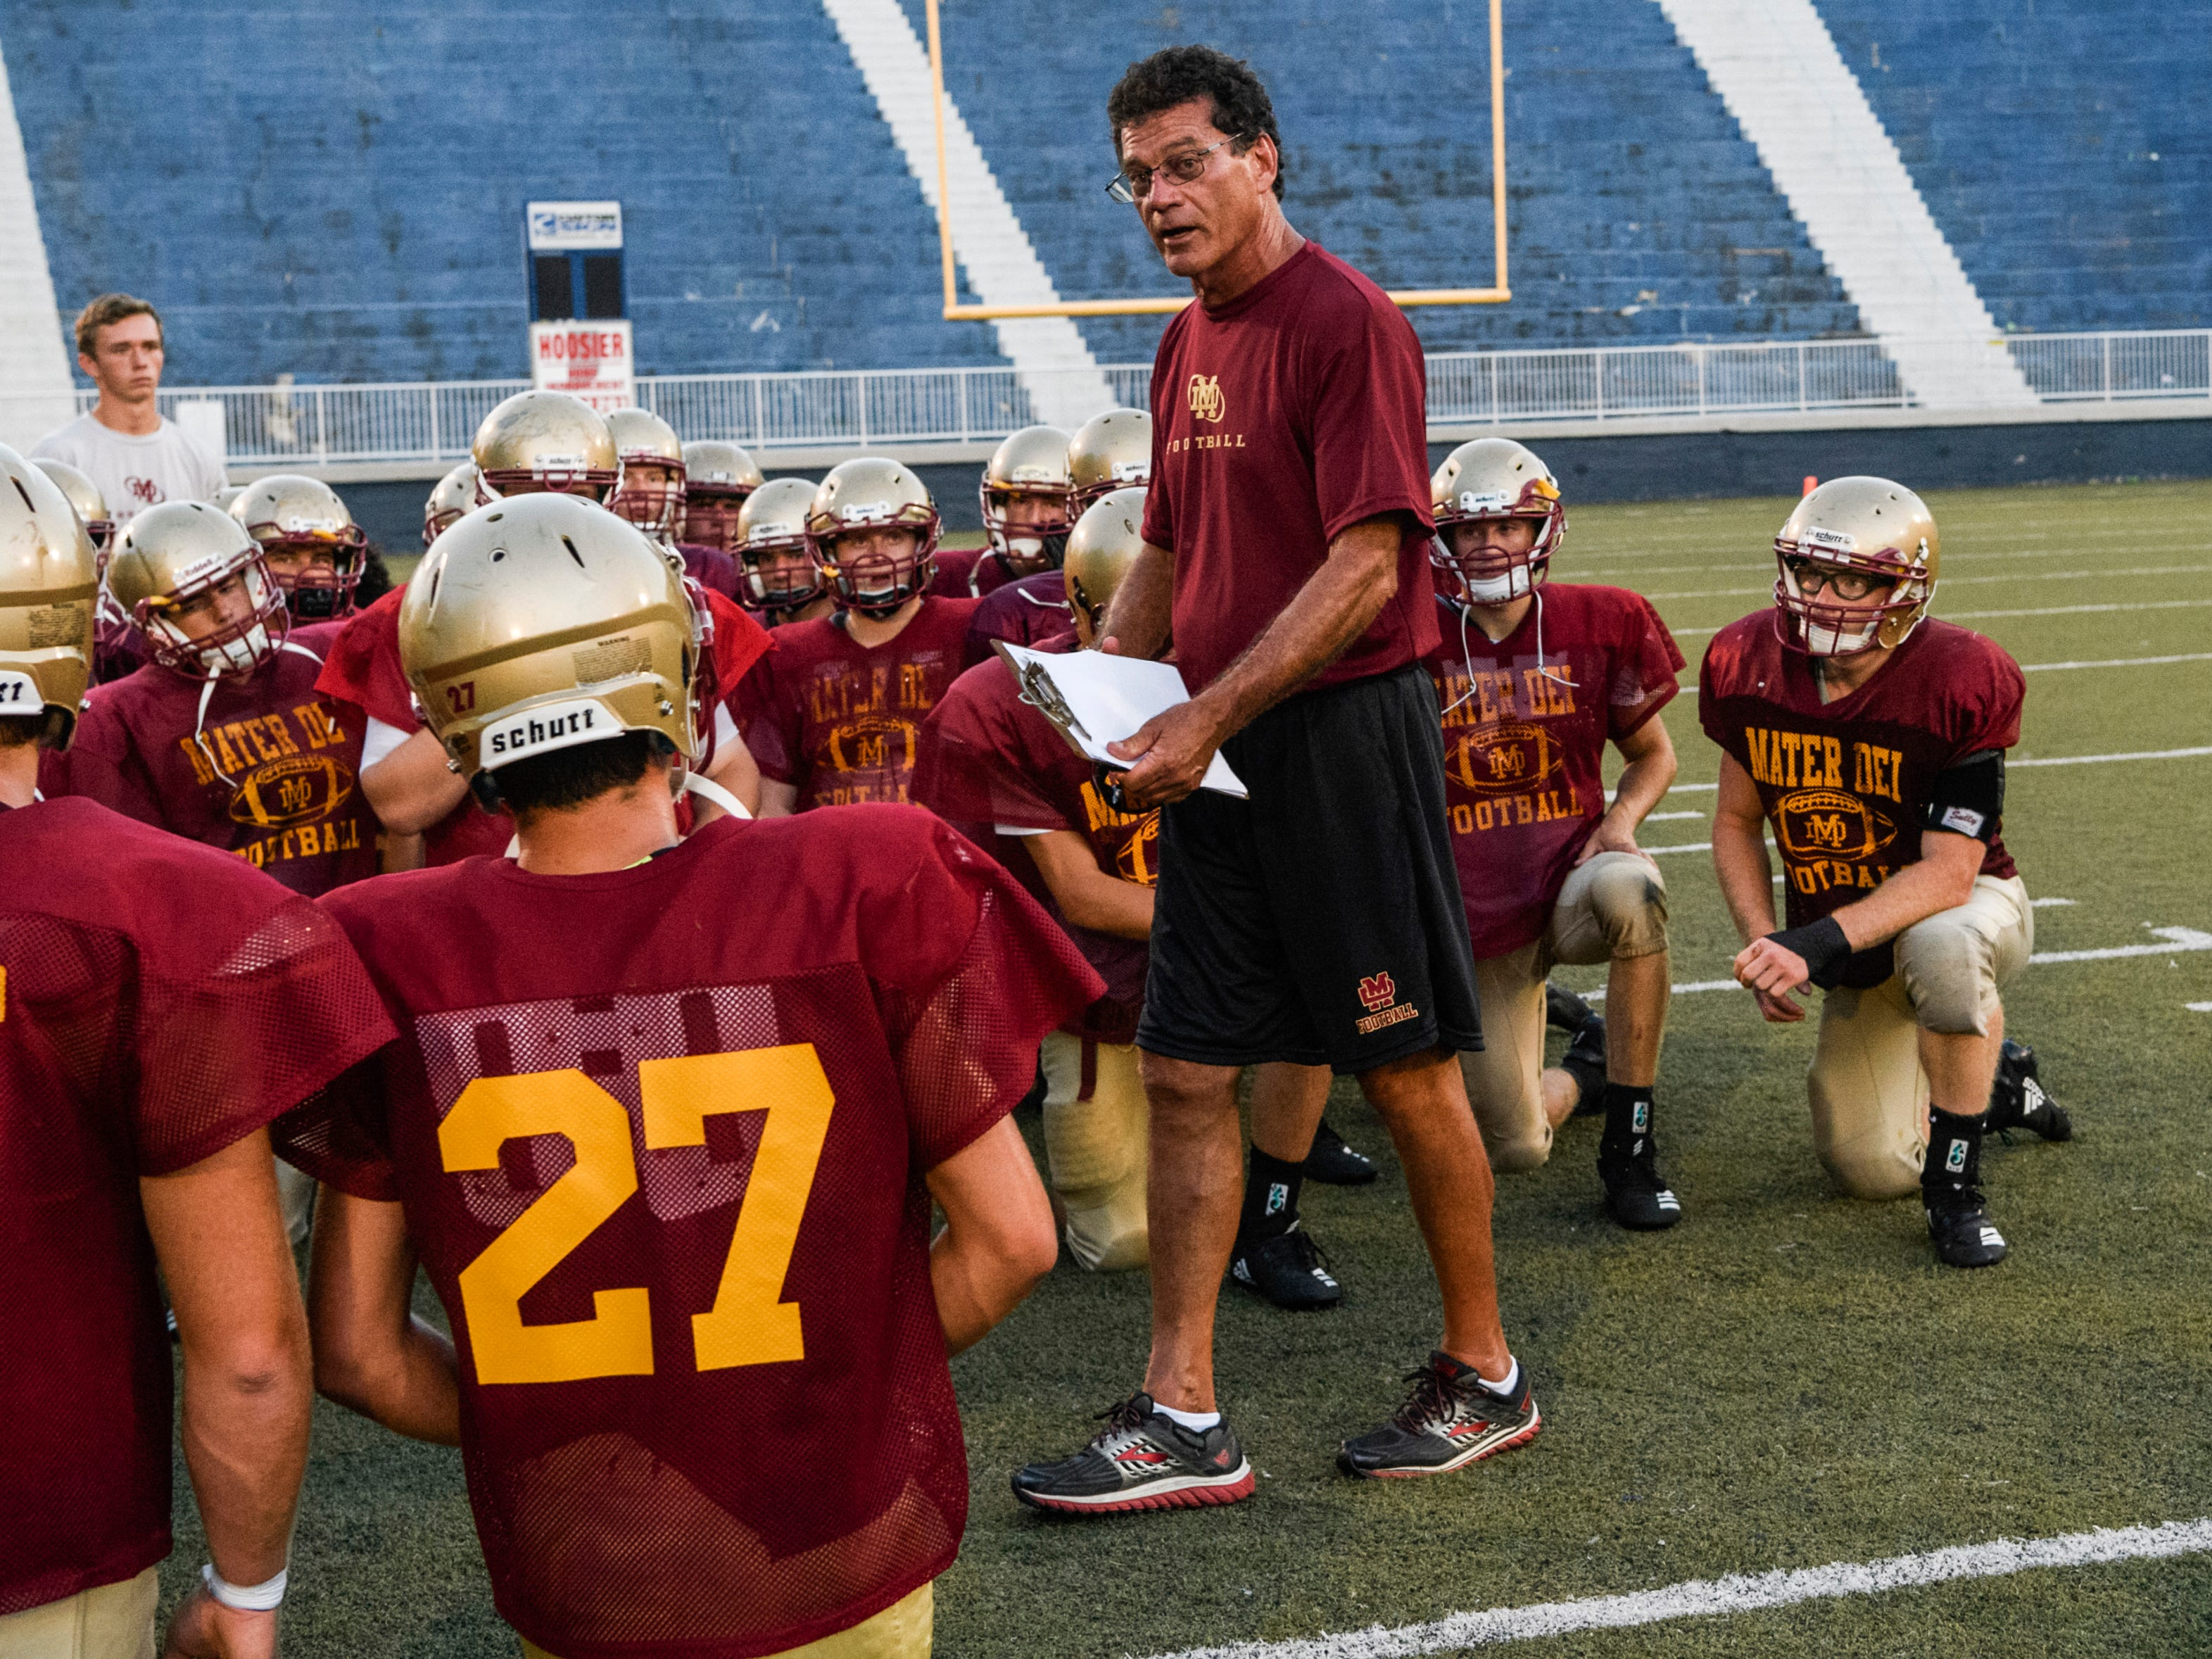 Mater Dei Head Coach Mike Goebel talks to his team after finishing a scrimmage against the Reitz Panthers at the Reitz Bowl in Evansville, Ind., Friday, Aug. 10, 2018. They will play Indian Creek in Trafalgar, Ind., next Saturday, August 18.